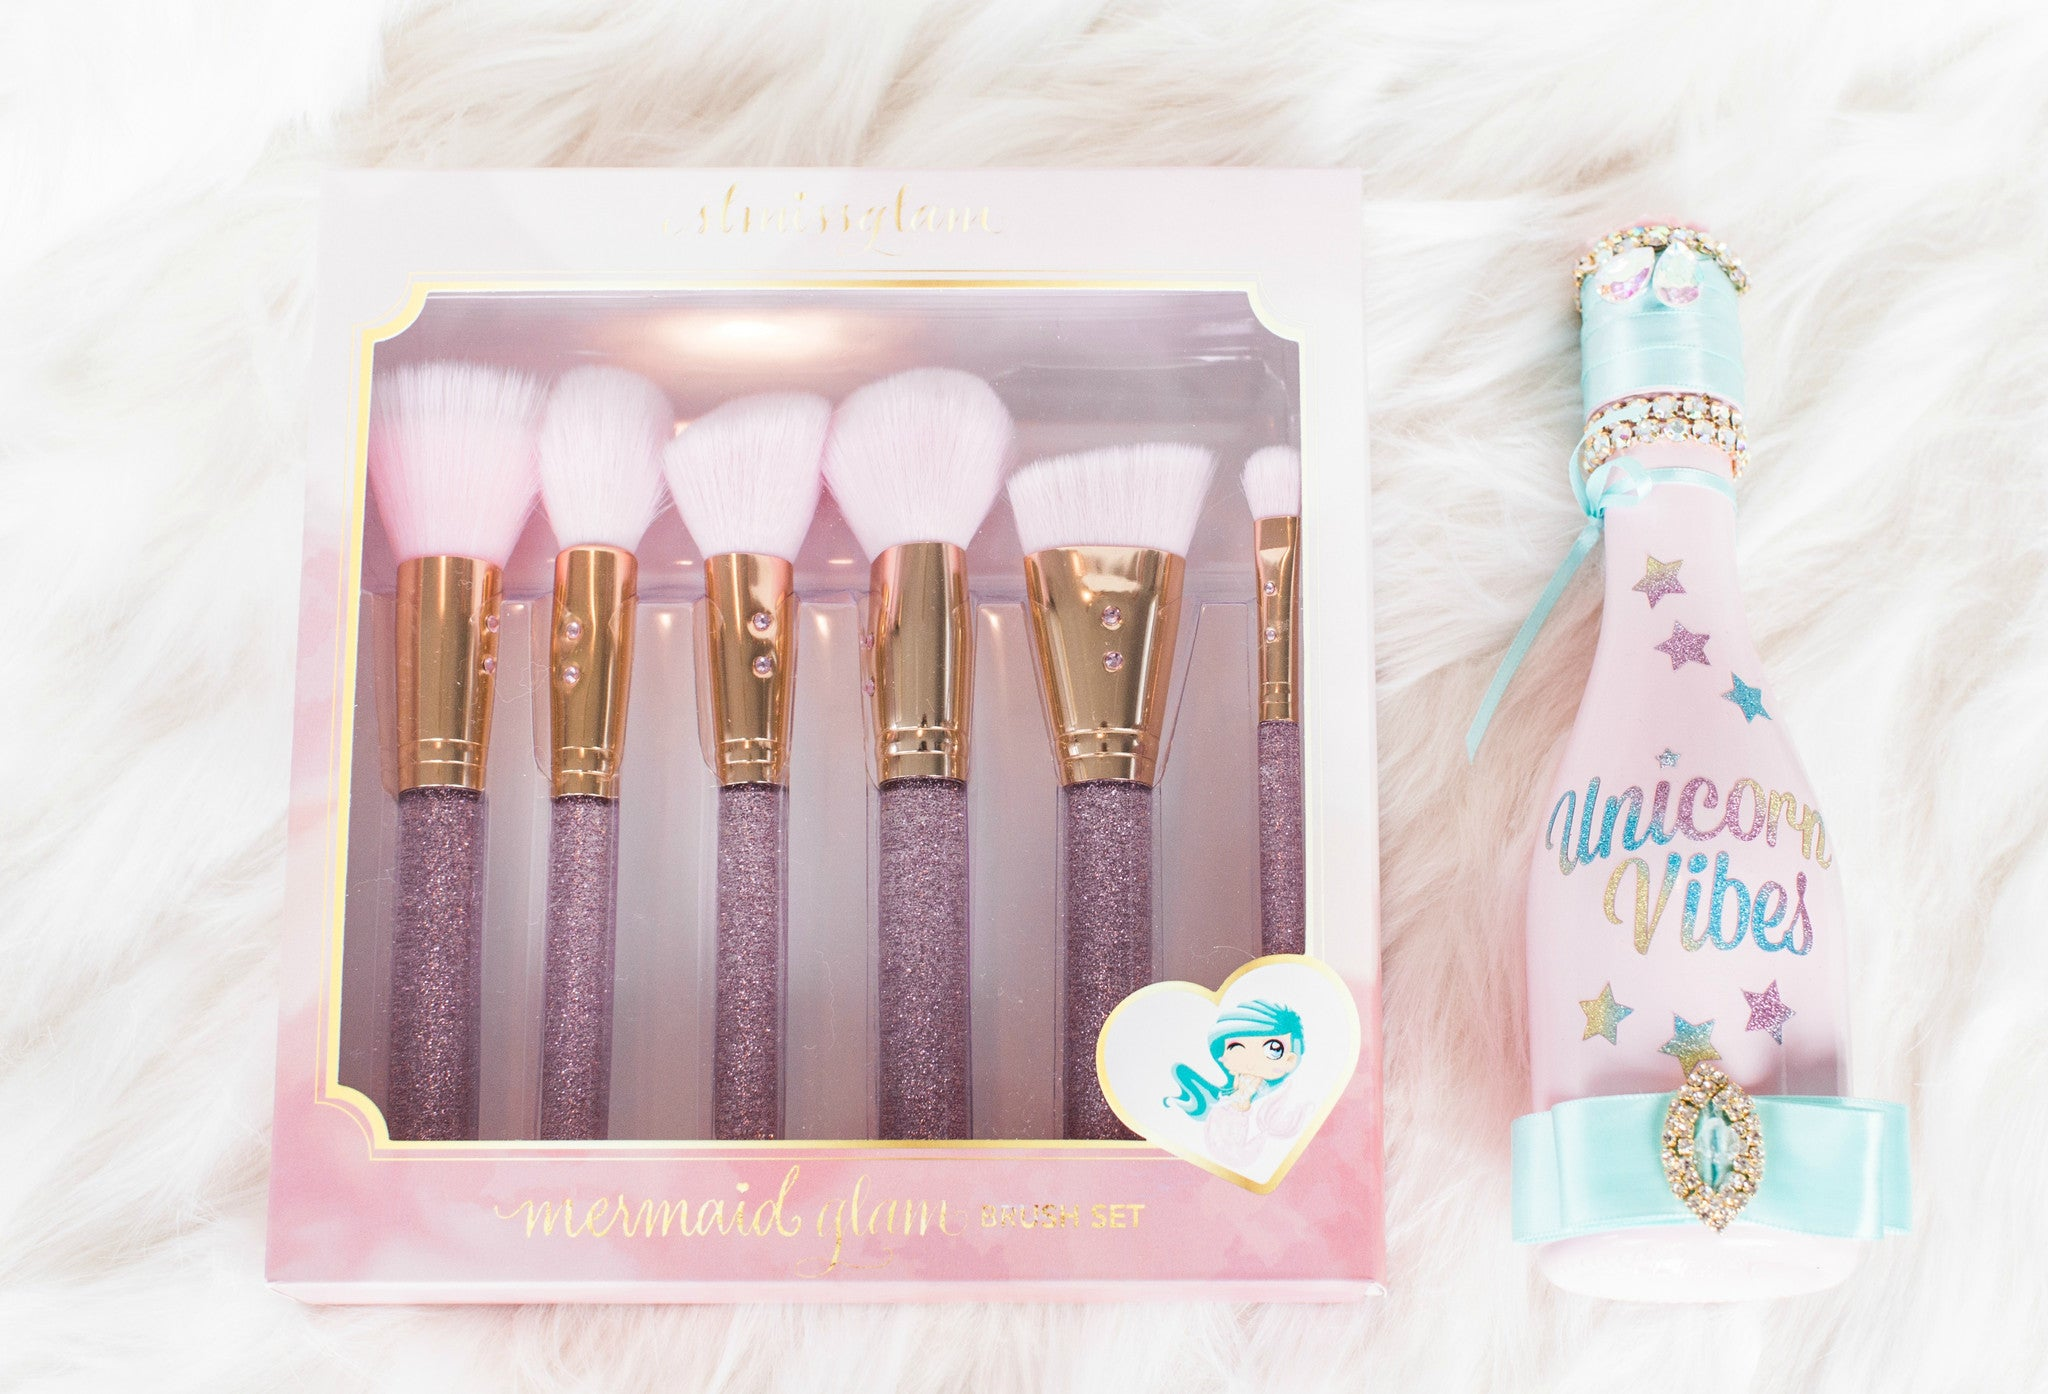 Mermaid Glam Brush Set💕